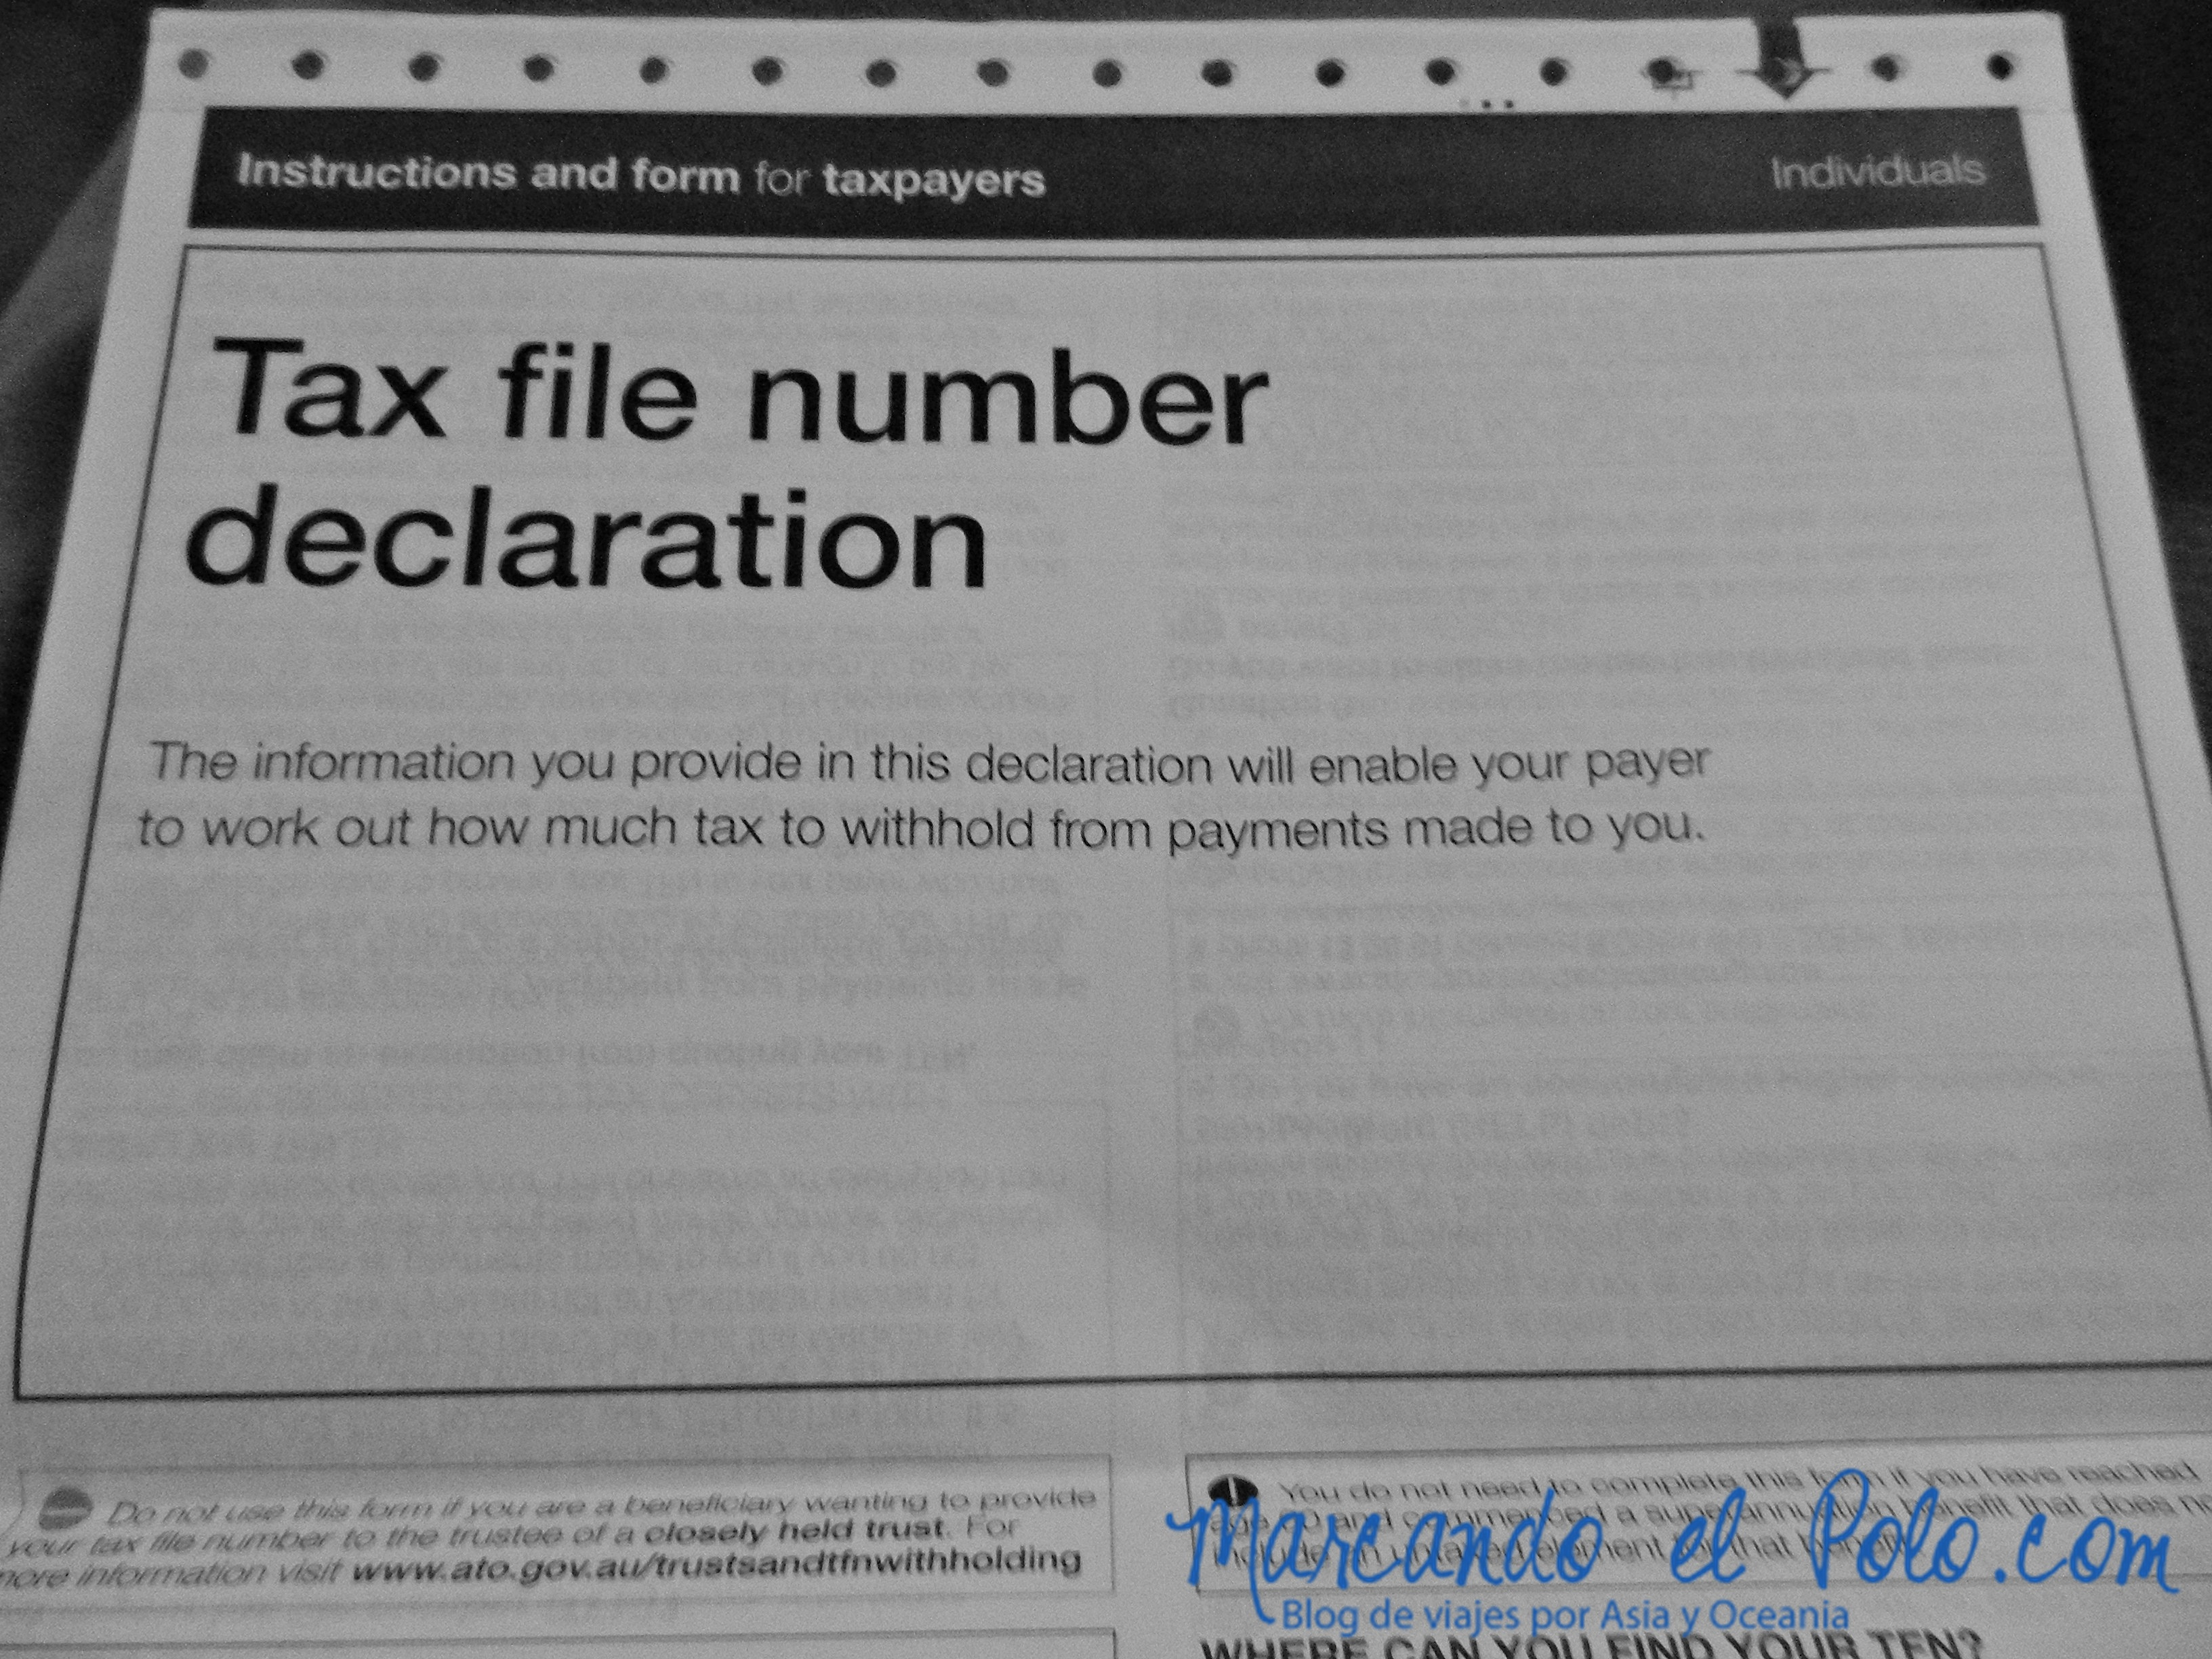 Working Holiday Australia: Tax File Number